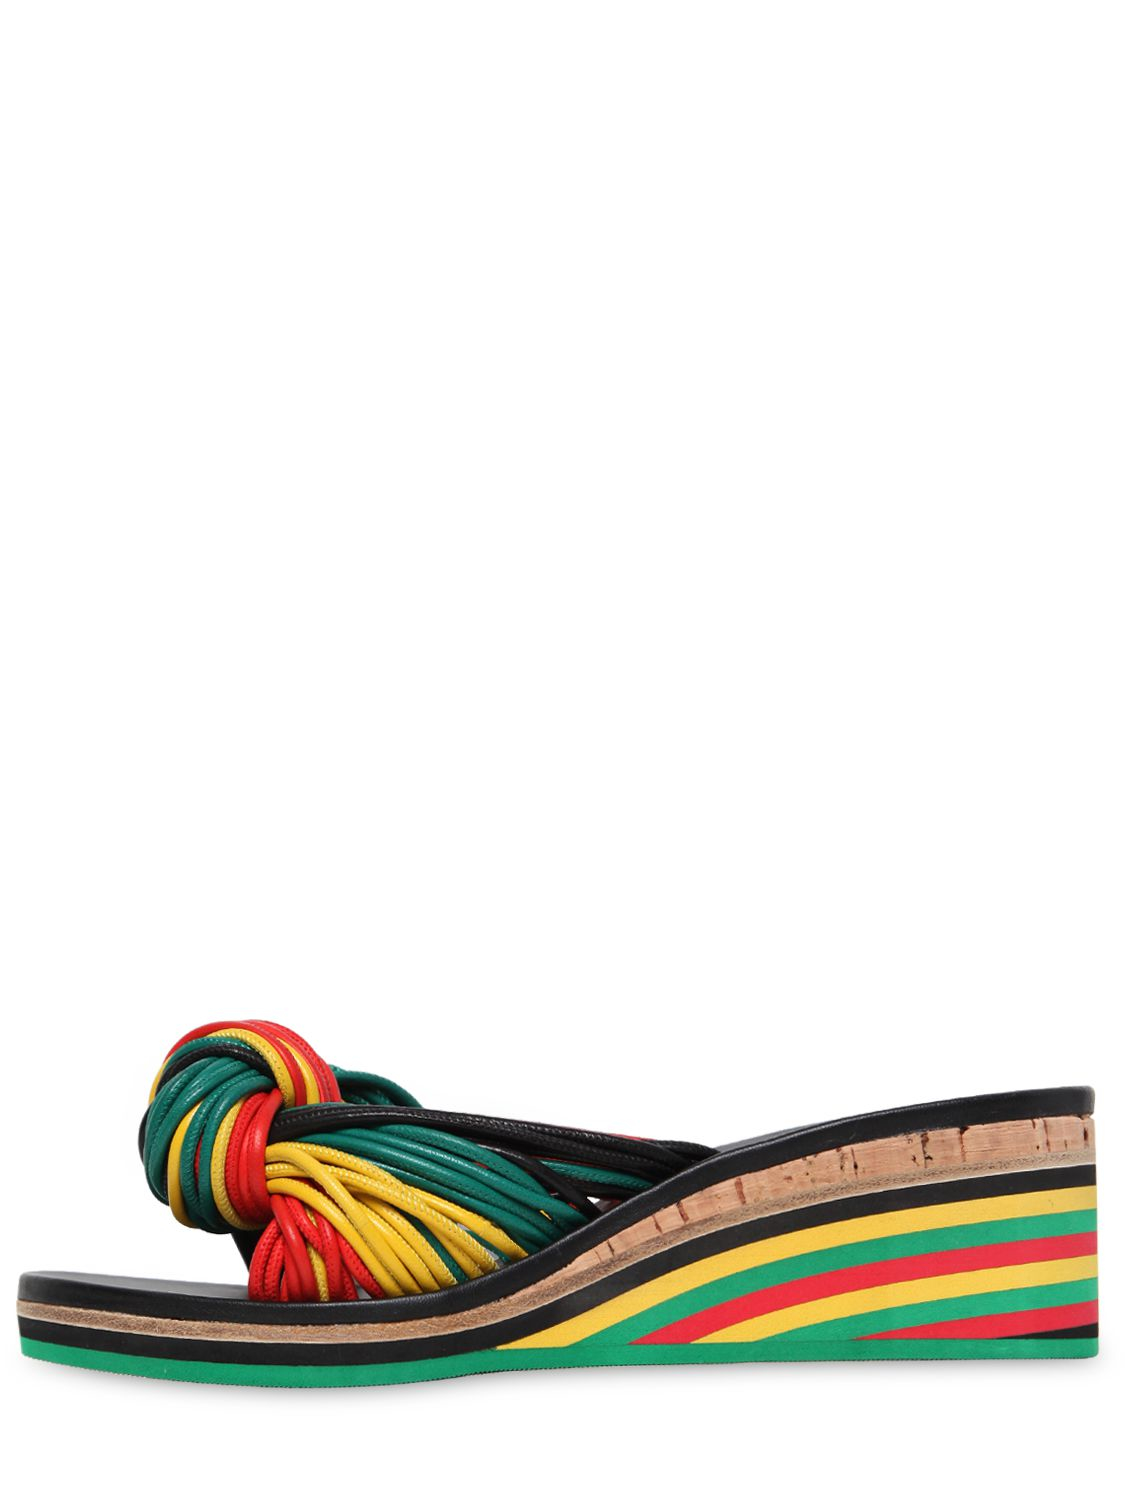 Chlo 233 60mm Jamaica Knot Leather Wedge Sandals In Green Lyst